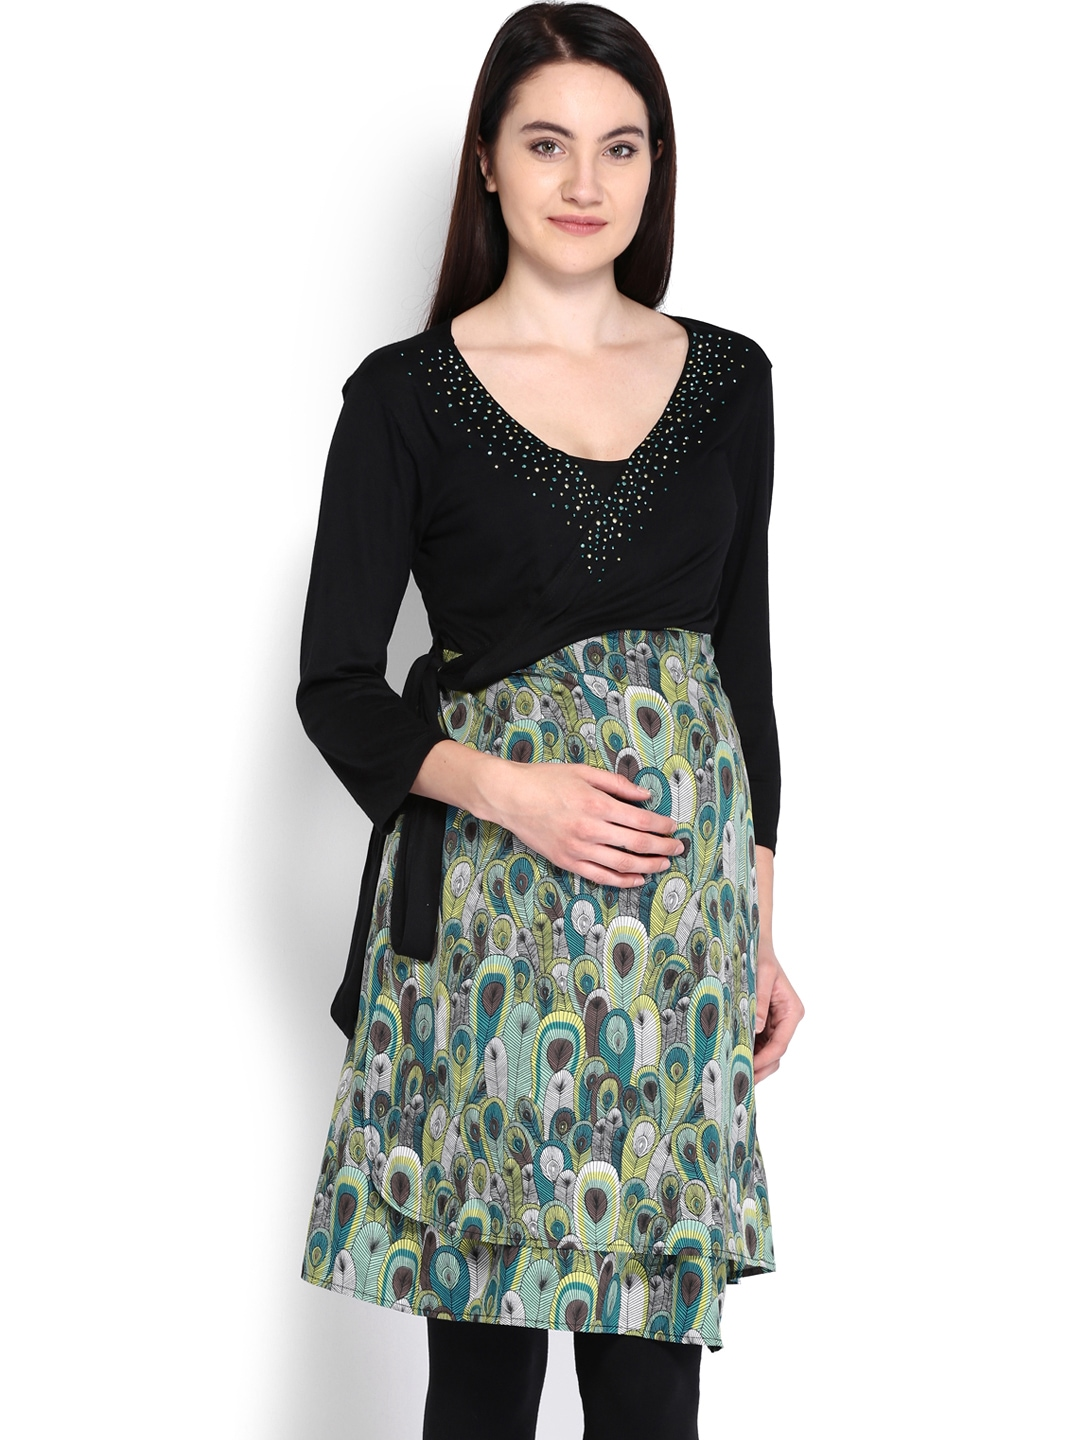 We ve got a variety of trendy and chic pregnancy clothing including maternity dresses, pants, jeans and more! Dresses Maternity. Narrow by Dress Style. Maternity. Maxi Dress. Body-Con. A Line. Sheath. Cold Shoulder. Nursing. See More. Motherhood Maternity Printed Dress.